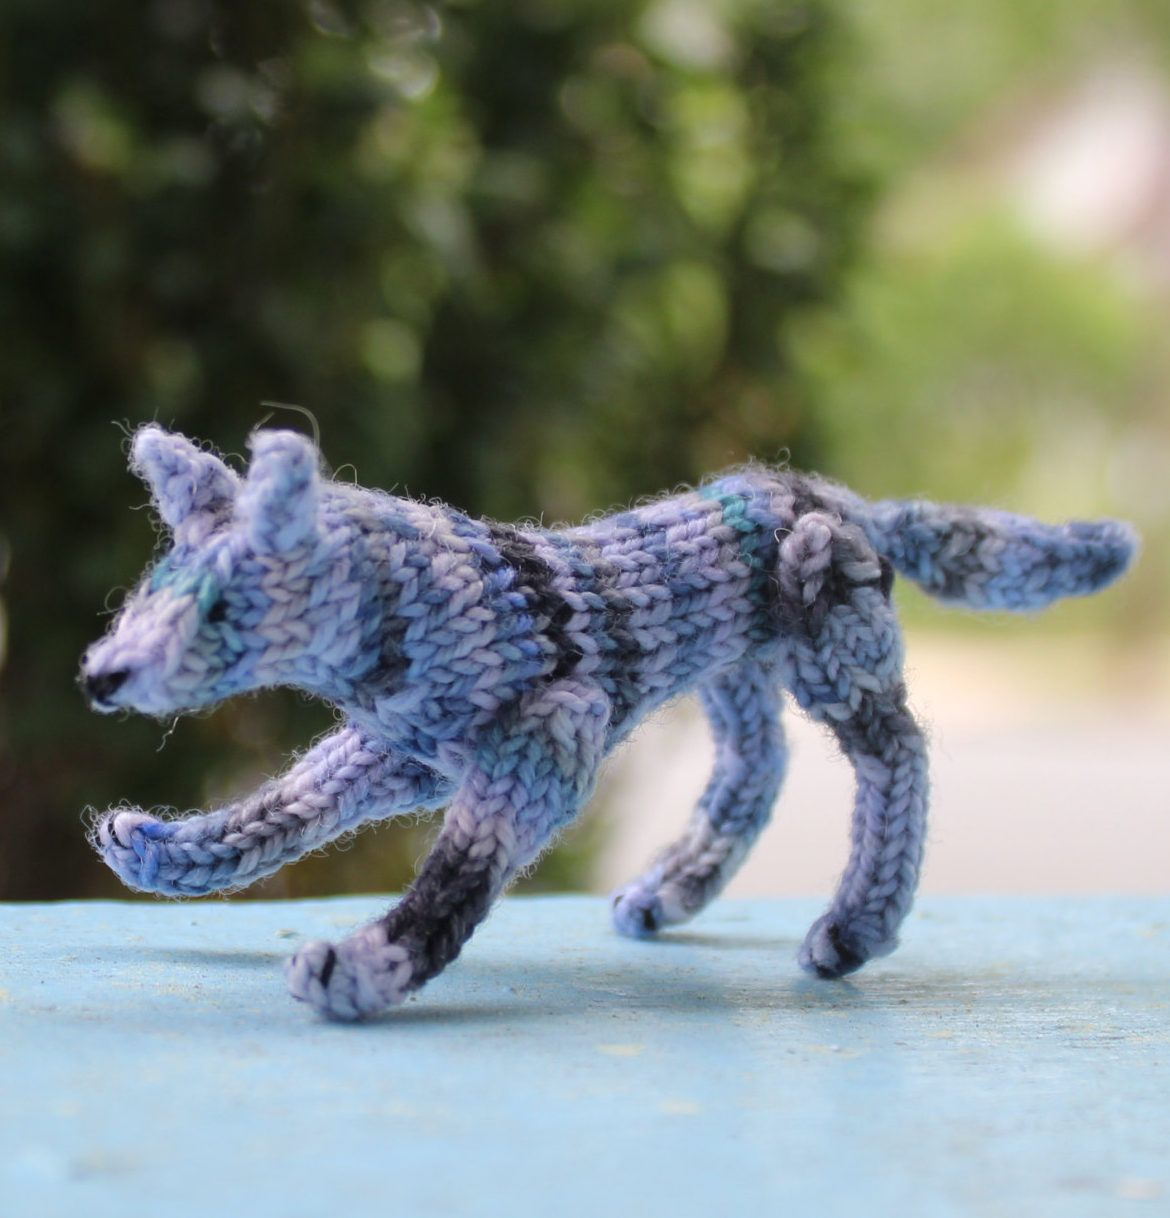 Teeny Toy Knitting Patterns | Knit patterns, Miniatures and Toy